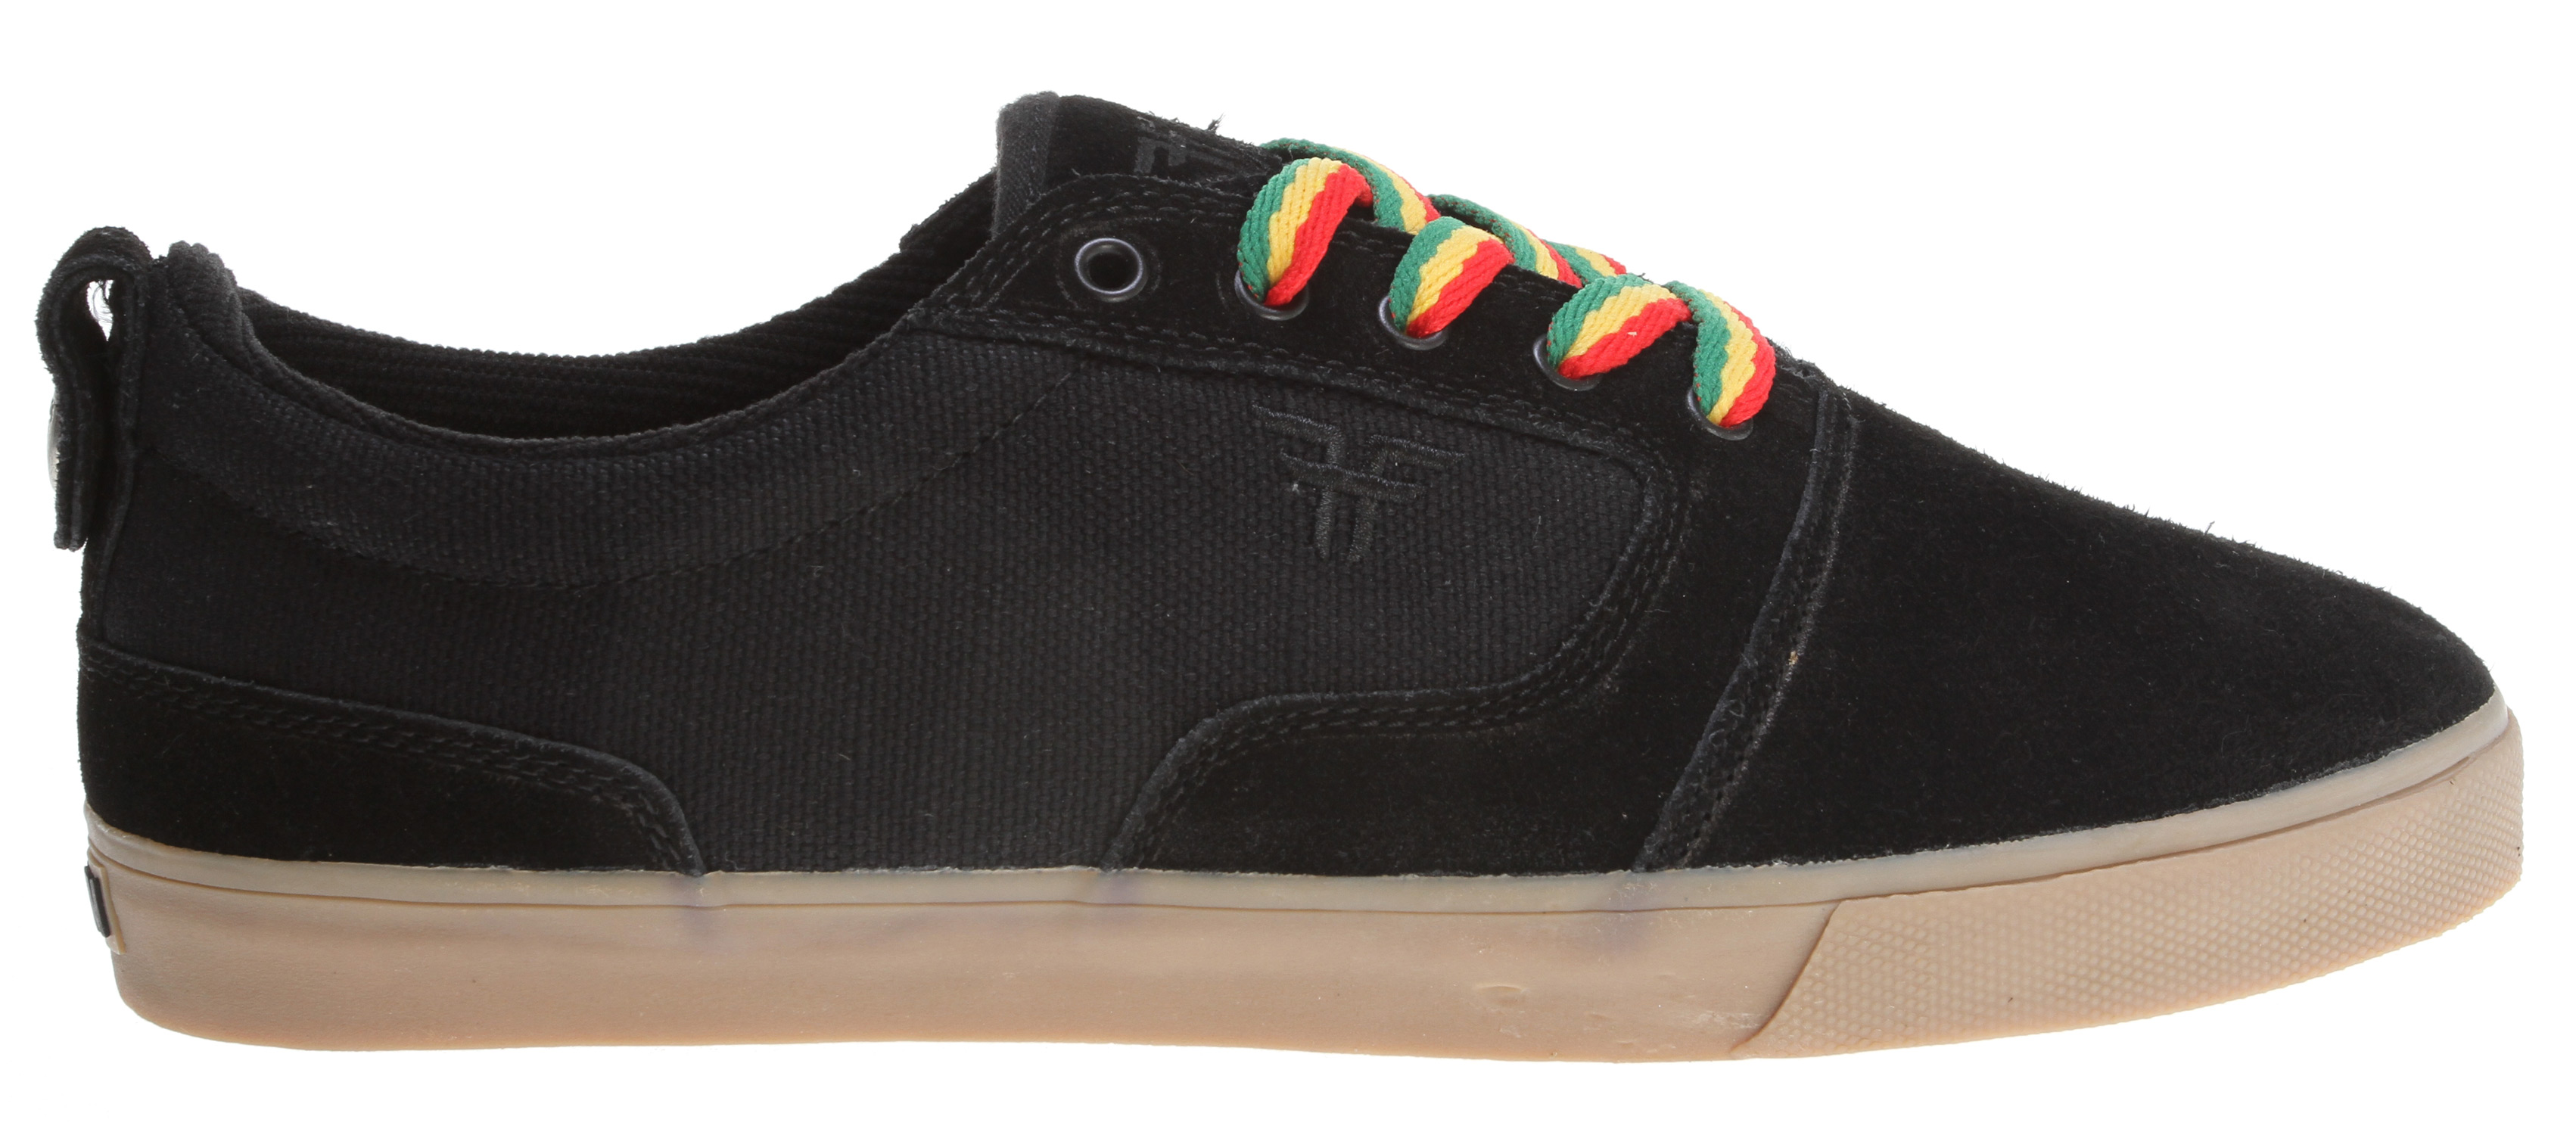 Skateboard With some similarities in styling to Tommy's previous shoe, the Coronado, the Kingston has a more traditional skate silhouette with additional panels for protection and lateral support.Key Features of the Fallen Kingston Skate Shoes: Low-profile vulcanized construction with a highly abrasion resistant outsole Form fitting EVA insole for comfort upper is made from heavy-duty canvas/hemp and/or suede/leather Uniquely designed tow and vamp construction that helps the upper keep it's shape and prevent blowouts Comfortable and functional shoe with a traditional aesthetic, the Kingston is sure to become a classic - $41.95